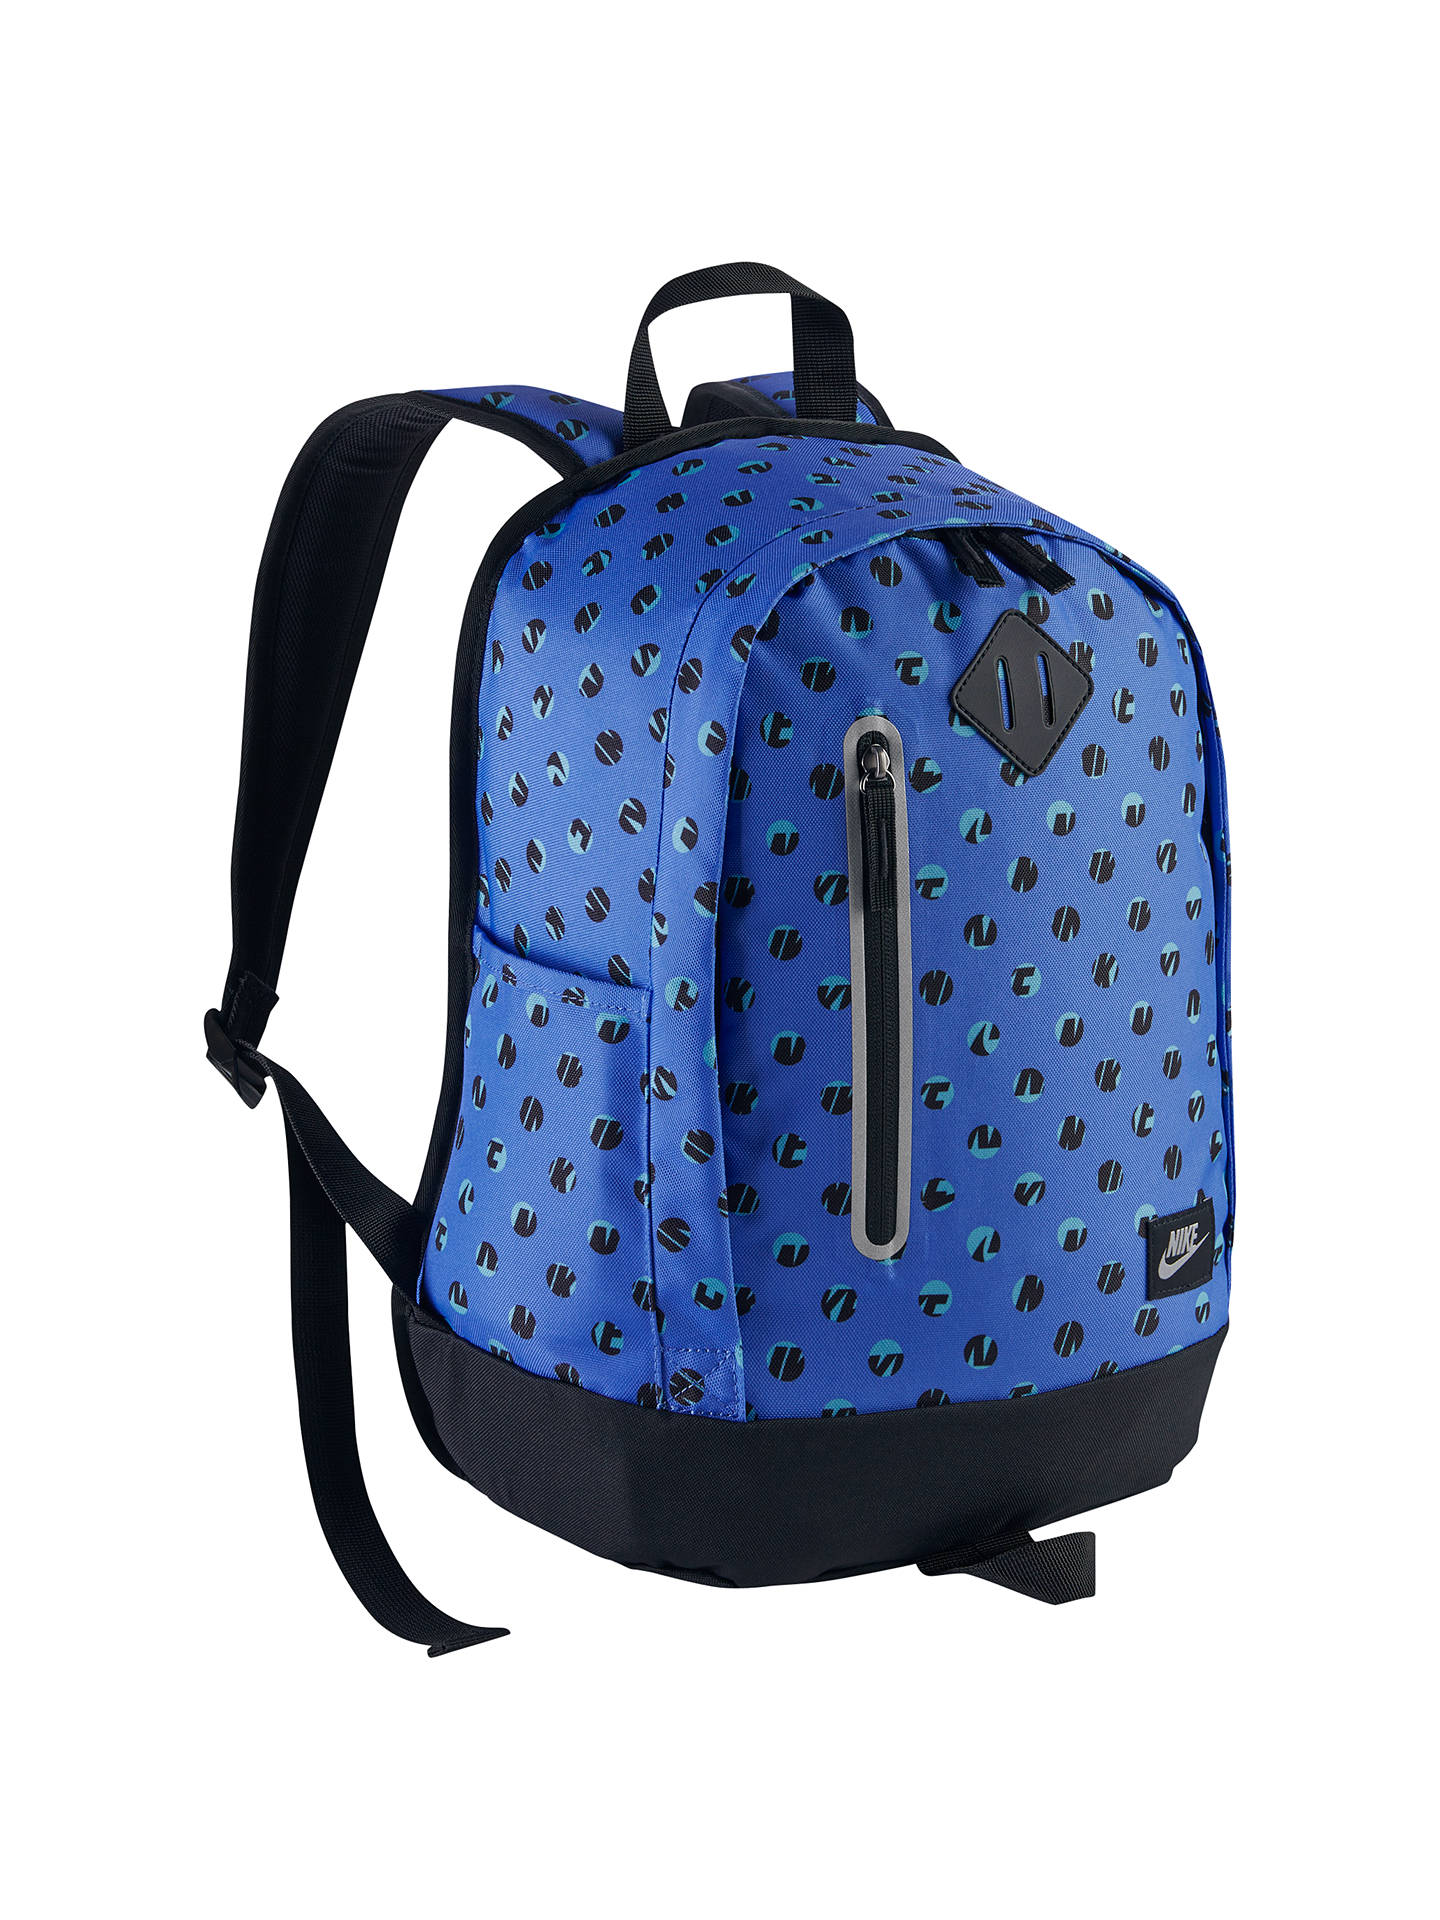 7be35710ac512 Buy Nike Cheyenne Dot Print Children's Backpack, Comet Blue/Black Online at  johnlewis.